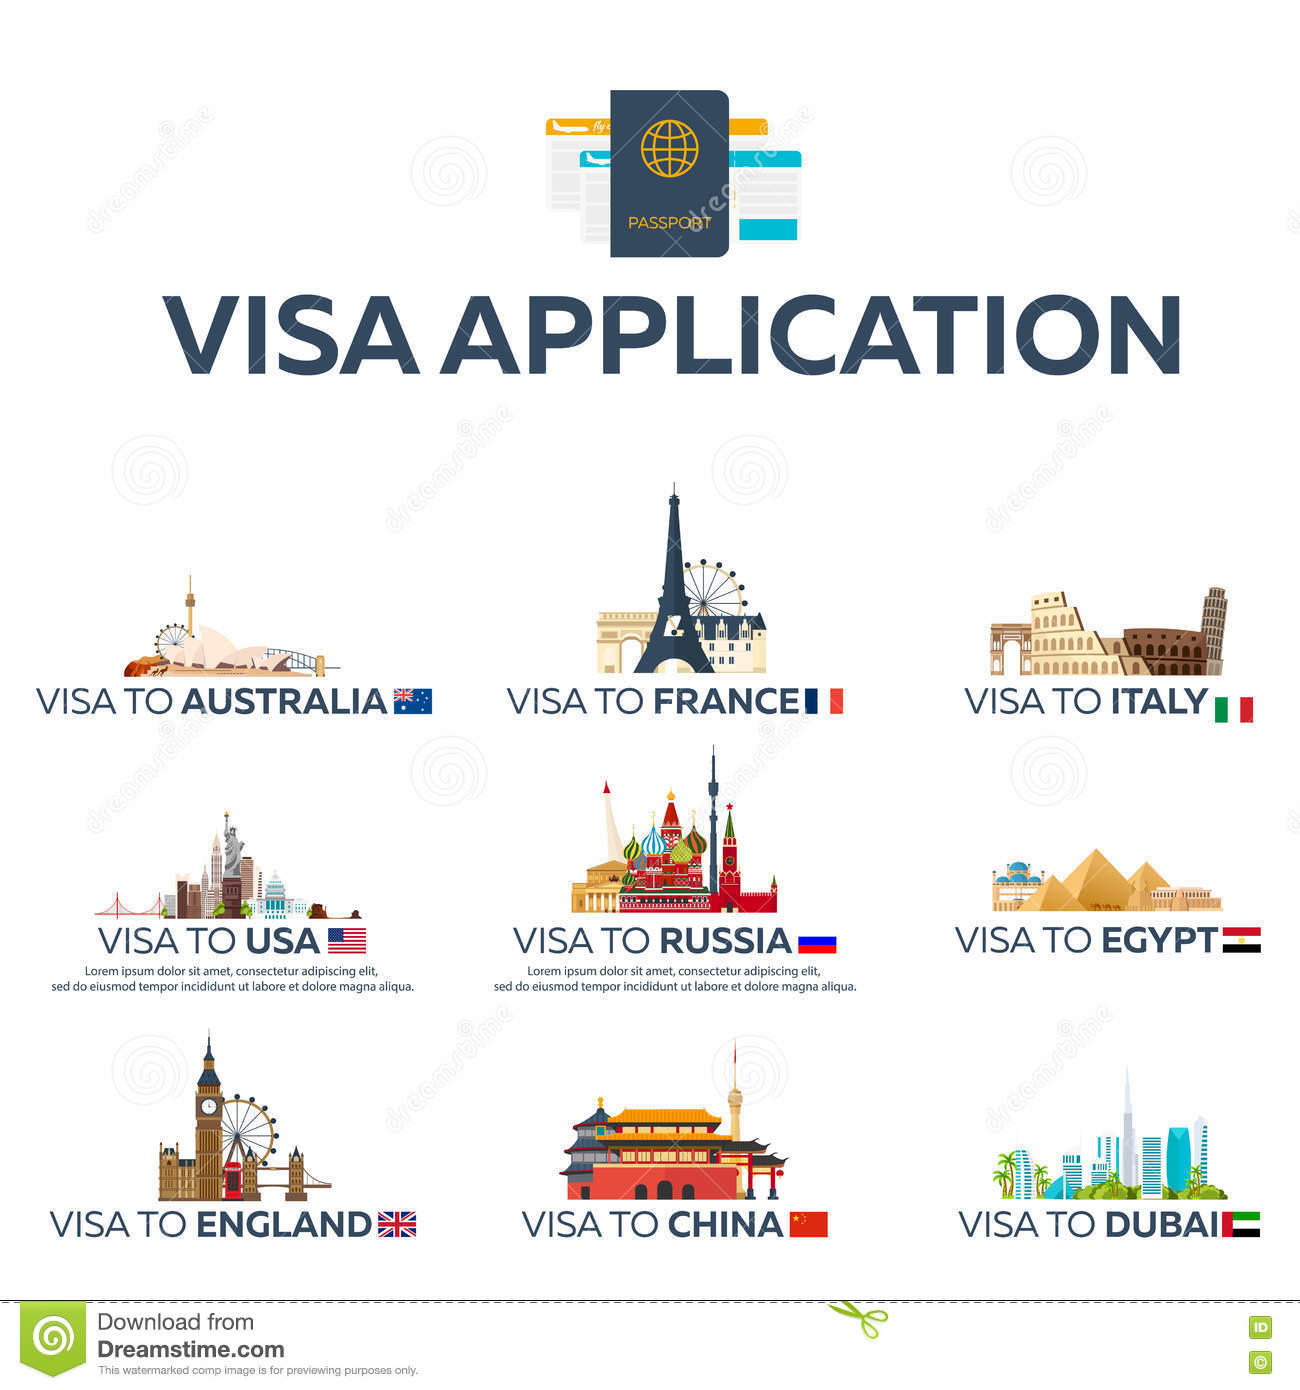 Travelling in USA visa